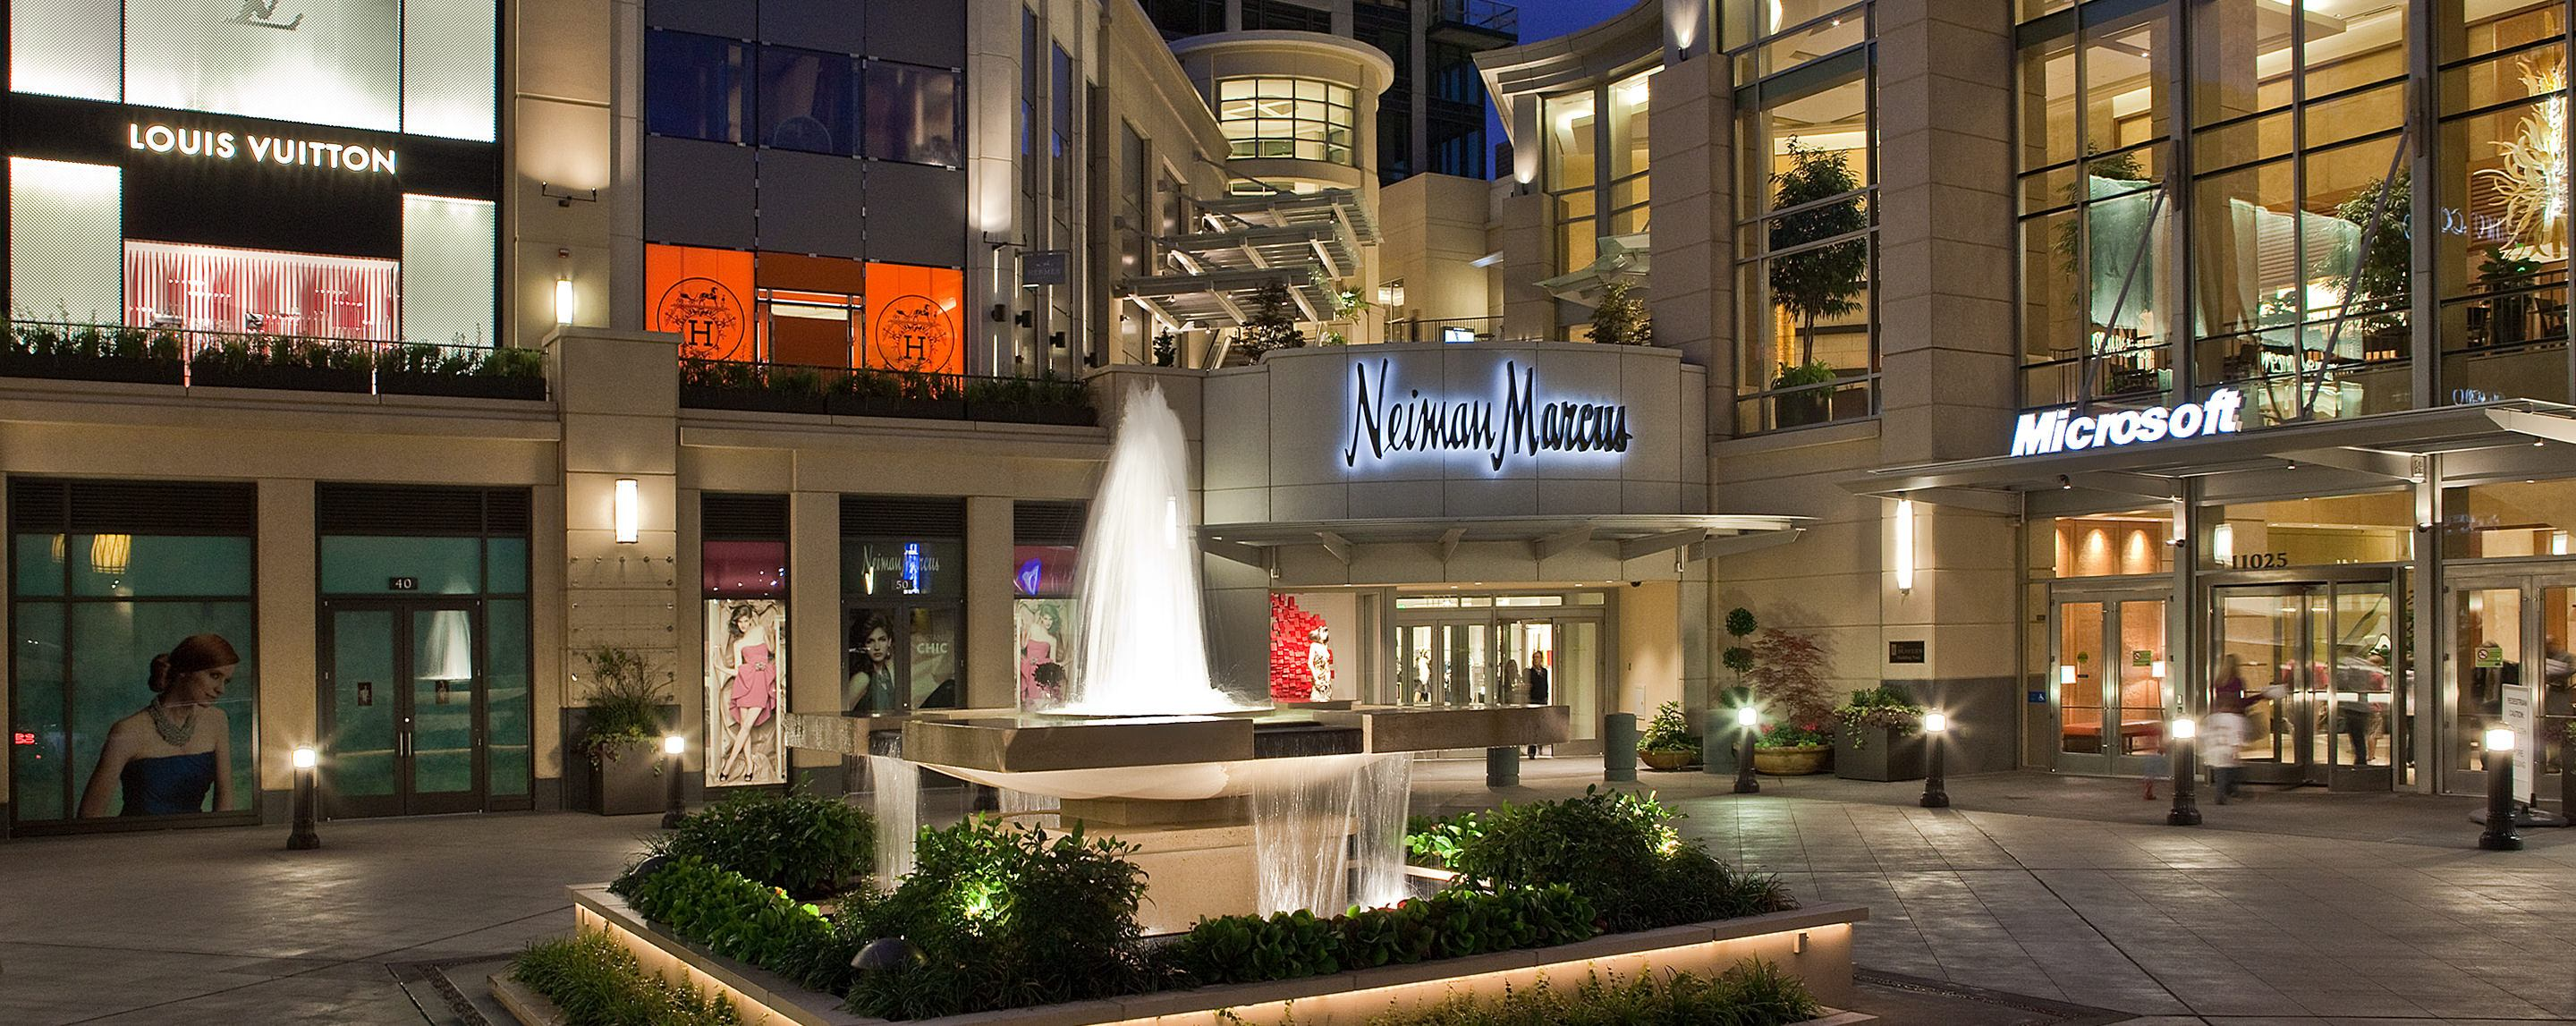 Louis Vuitton, Chic, Neiman Marcus, and Microsoft stores surround a fountain at an outdoor mall at dusk.